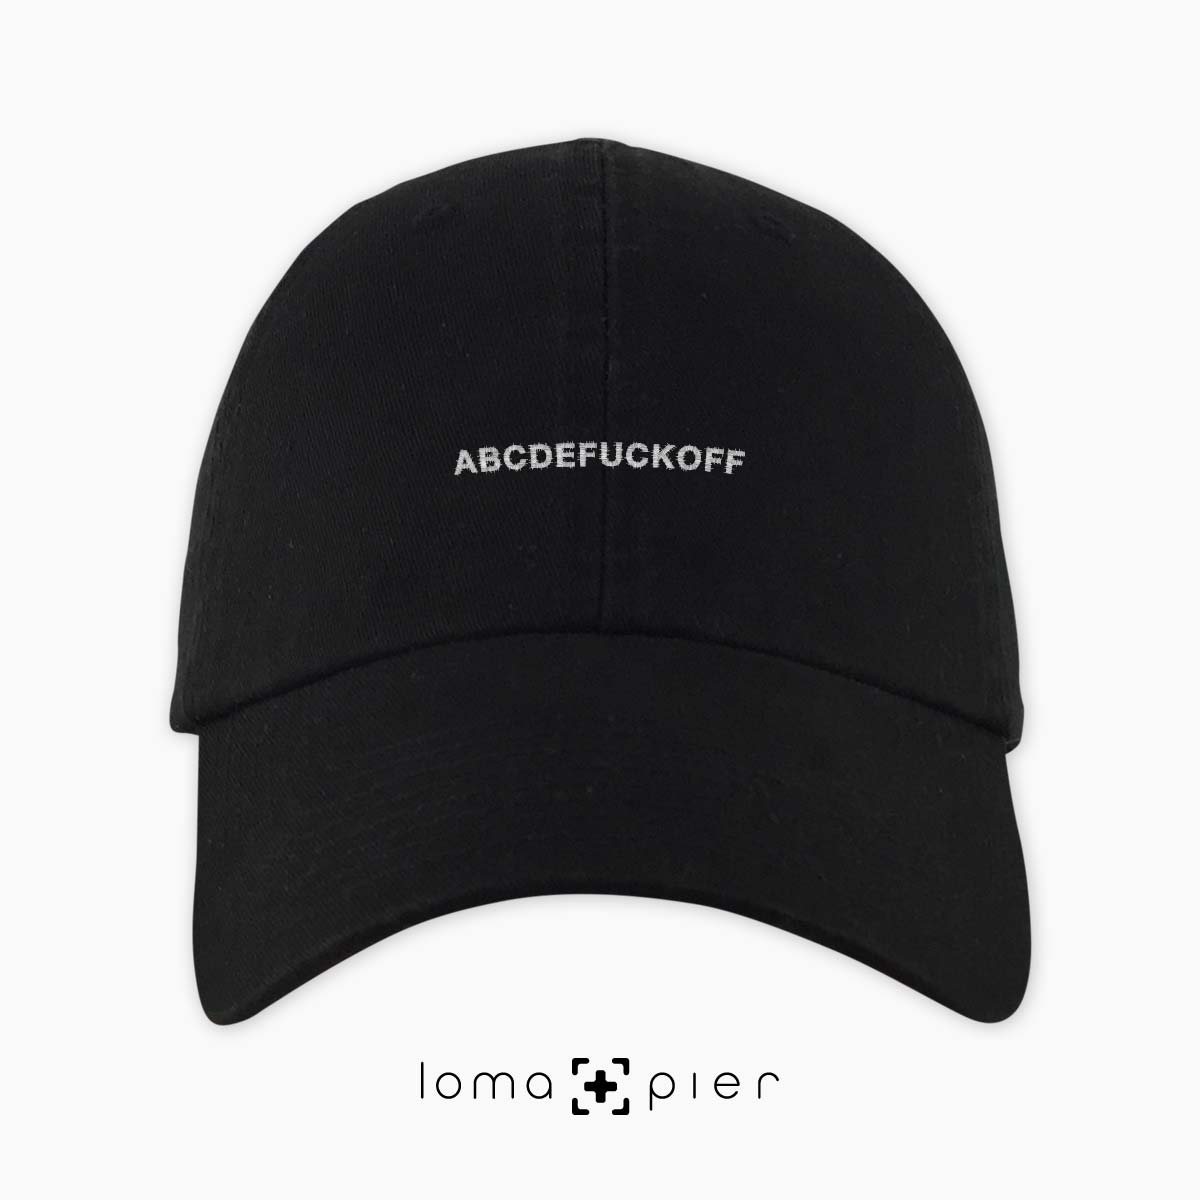 ABCDEFUCKOFF dad hat by loma+pier hat store